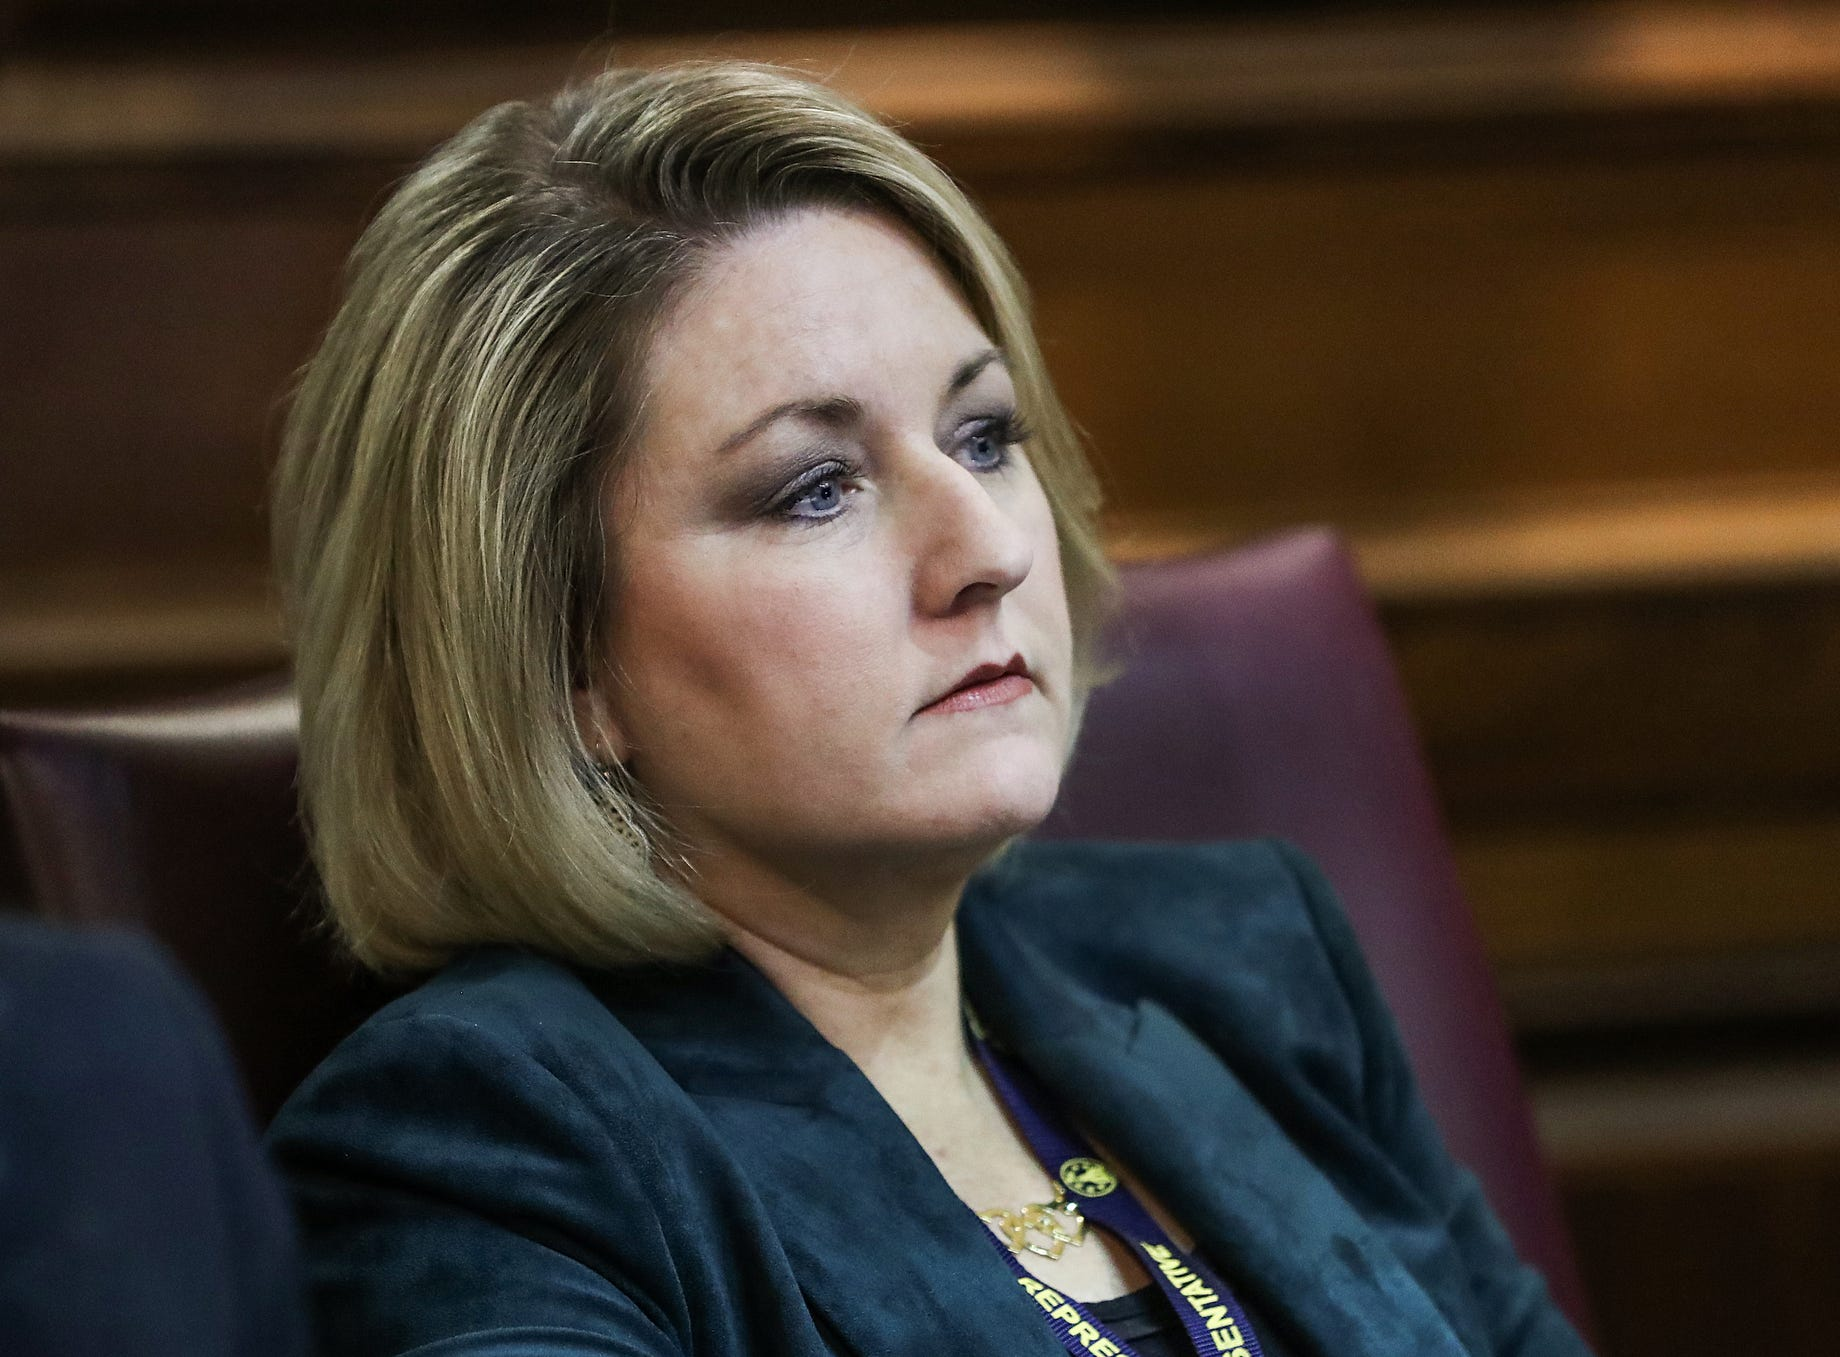 Rep. Christy Stutzman listens to speakers on the starting day of legislative session at the Indiana Statehouse, Indianapolis, Thursday, Jan. 3, 2019.